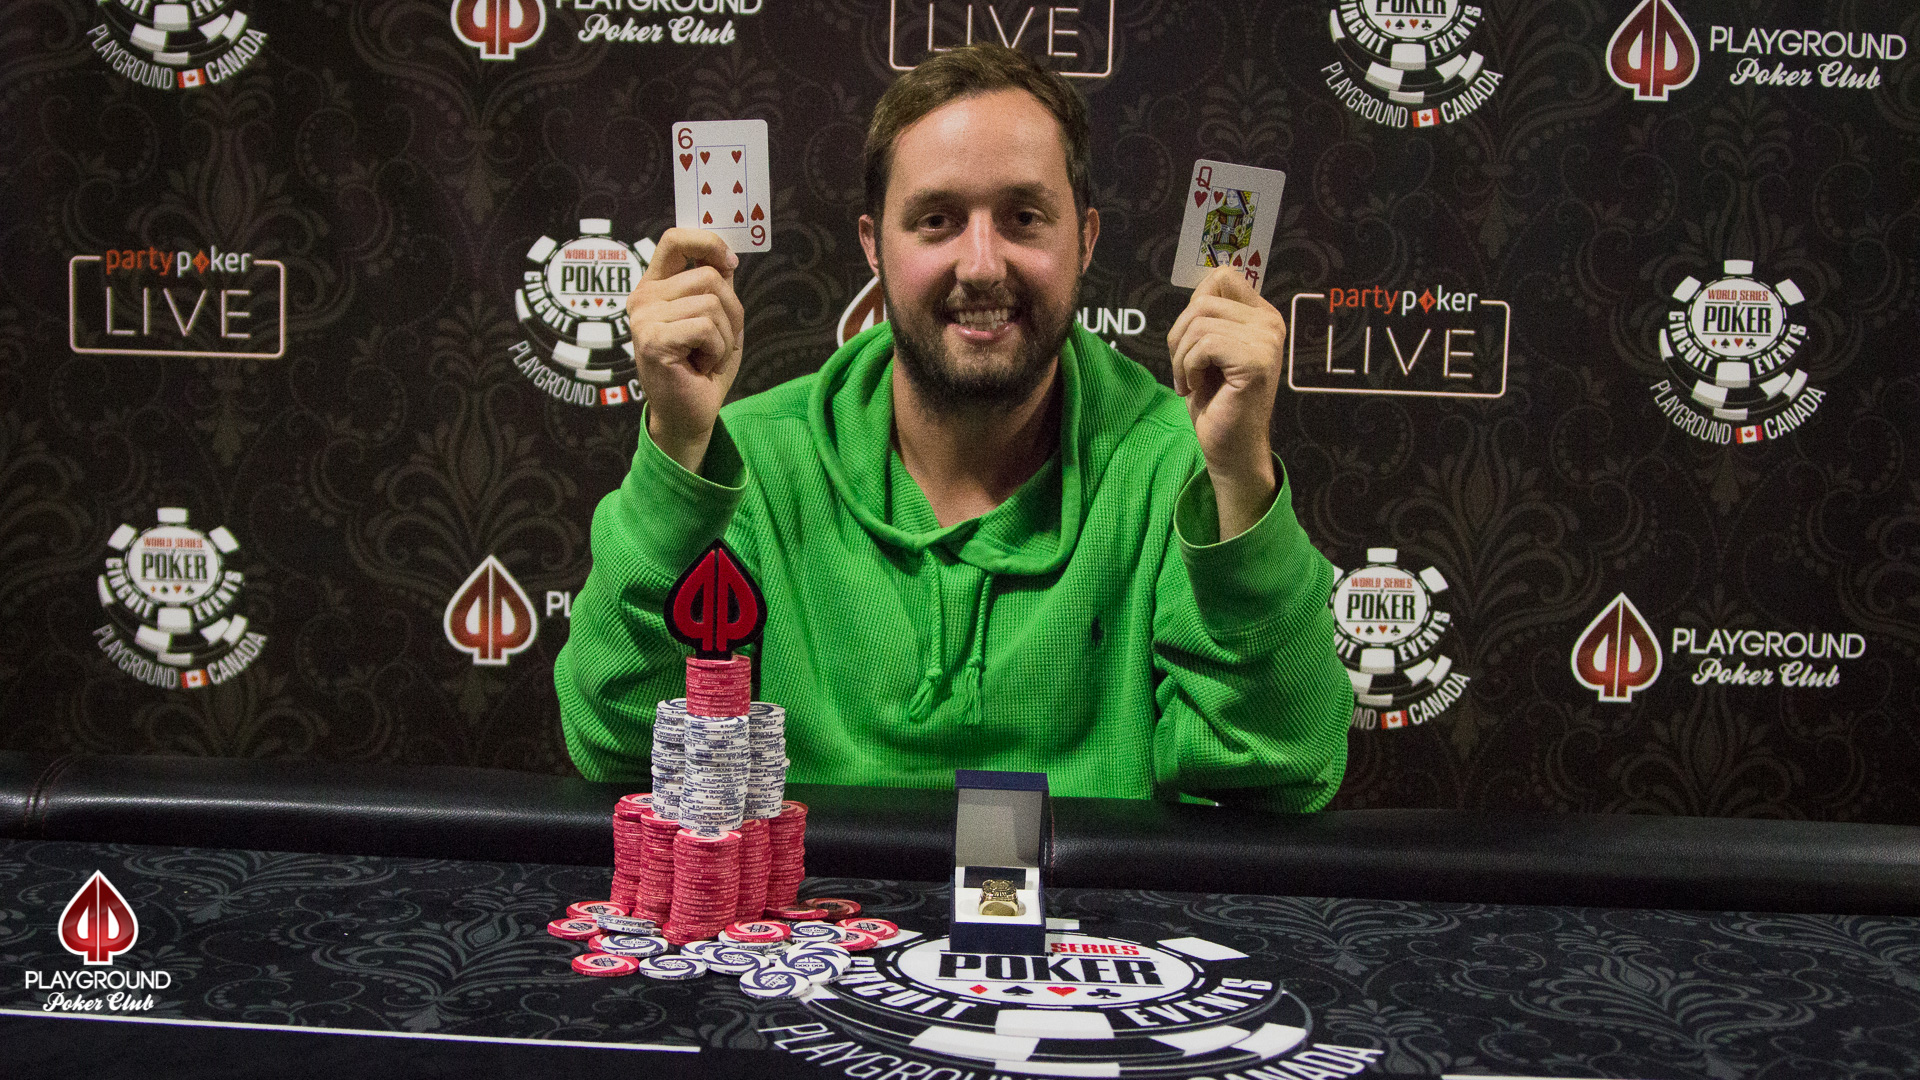 Carpentier-Perrault is the Super High Roller Champ!